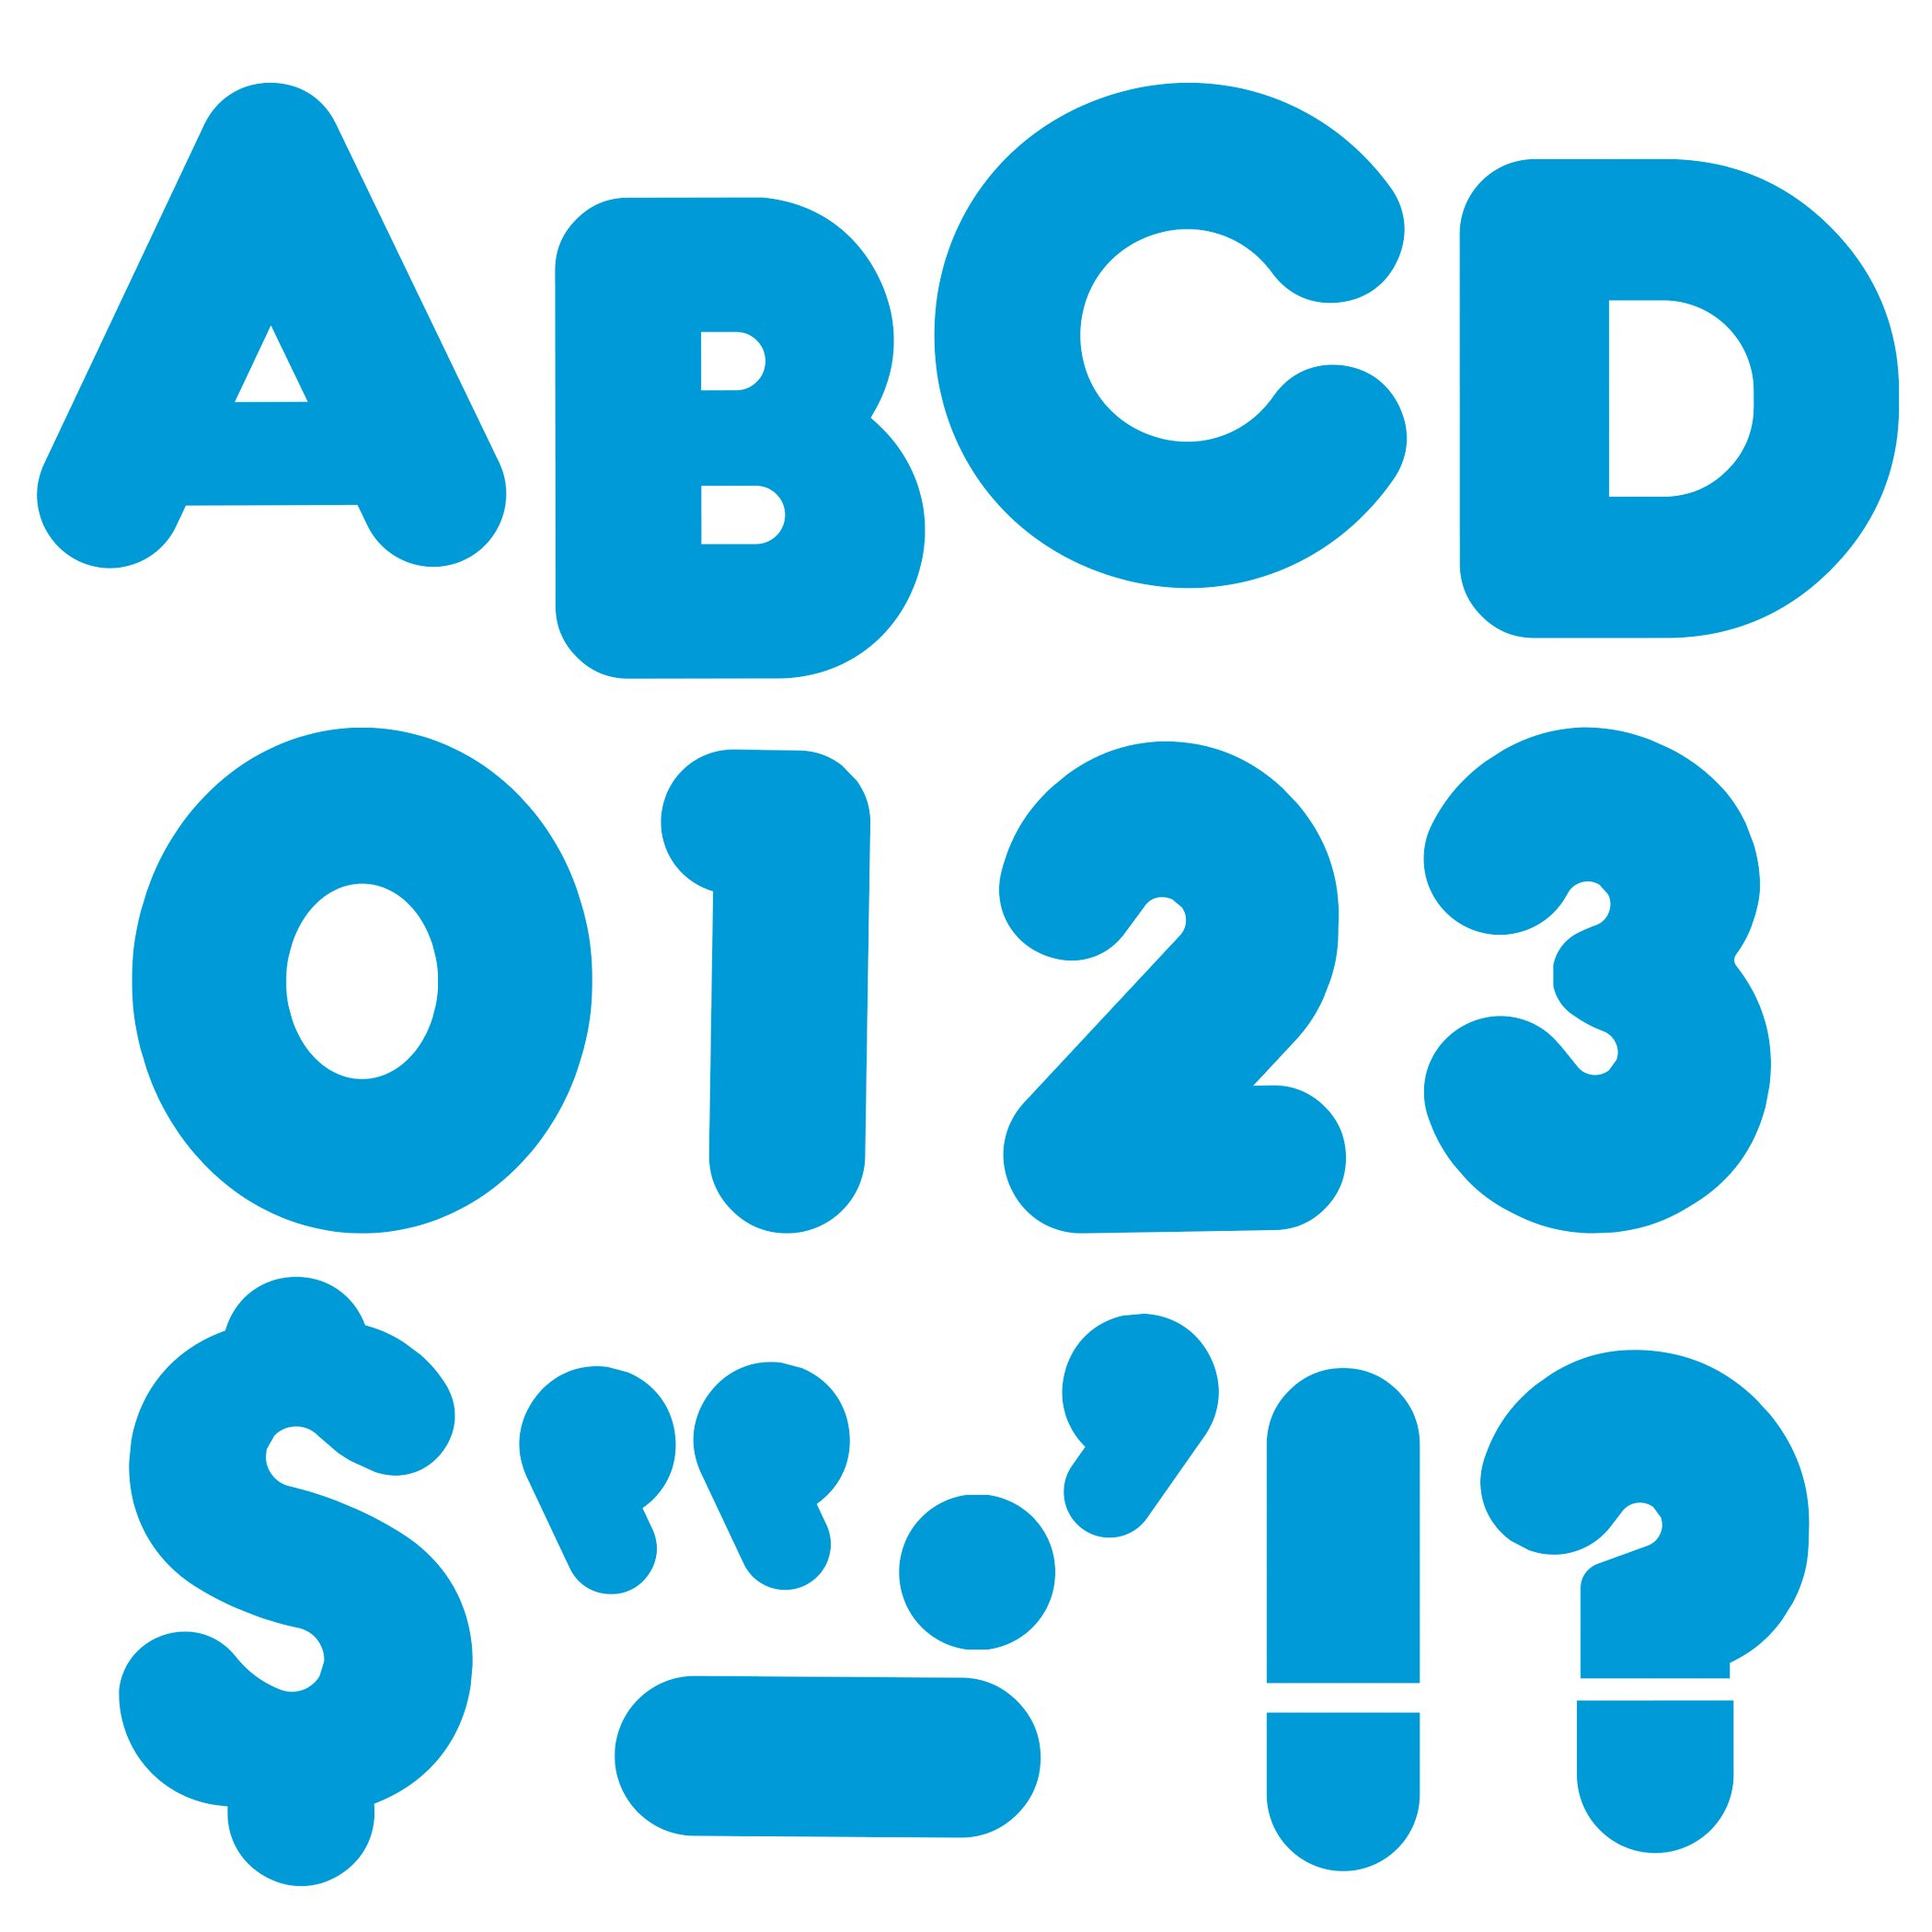 TREND enterprises, Inc. T-459BN Blue 4'' Casual Uppercase Ready Letters, 6 Packs by TREND Enterprises